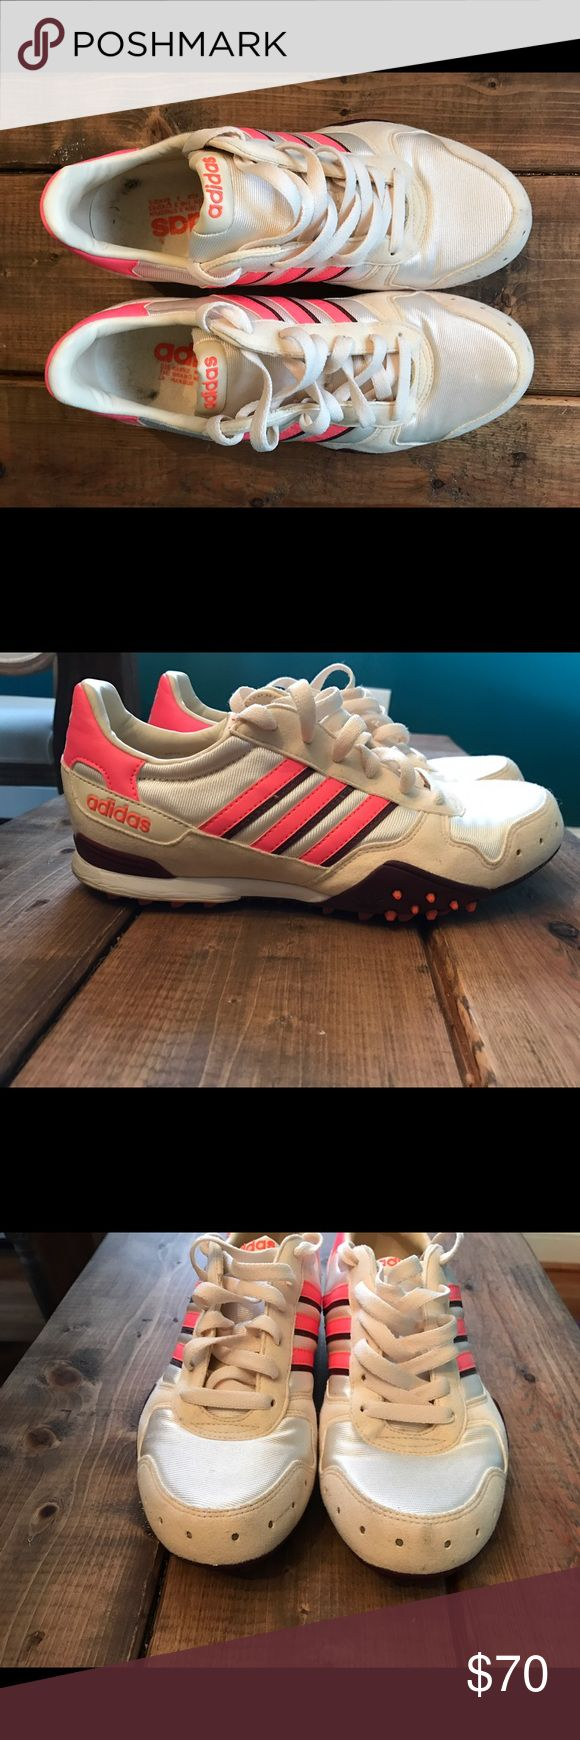 Adidas retro sneakers Off white cream color with bright salmon/coral retro adidas sneakers. Size says 7, fits more like 7.5/8. Worn only a few times! Minimal scuff on toe. Small mark on inside of heel seen in pics. In great shape!After pregnancy and child none of my shoes fit! Wish I could still wear them but have to make room for my new big hobbit feet😂 Adidas Shoes Sneakers